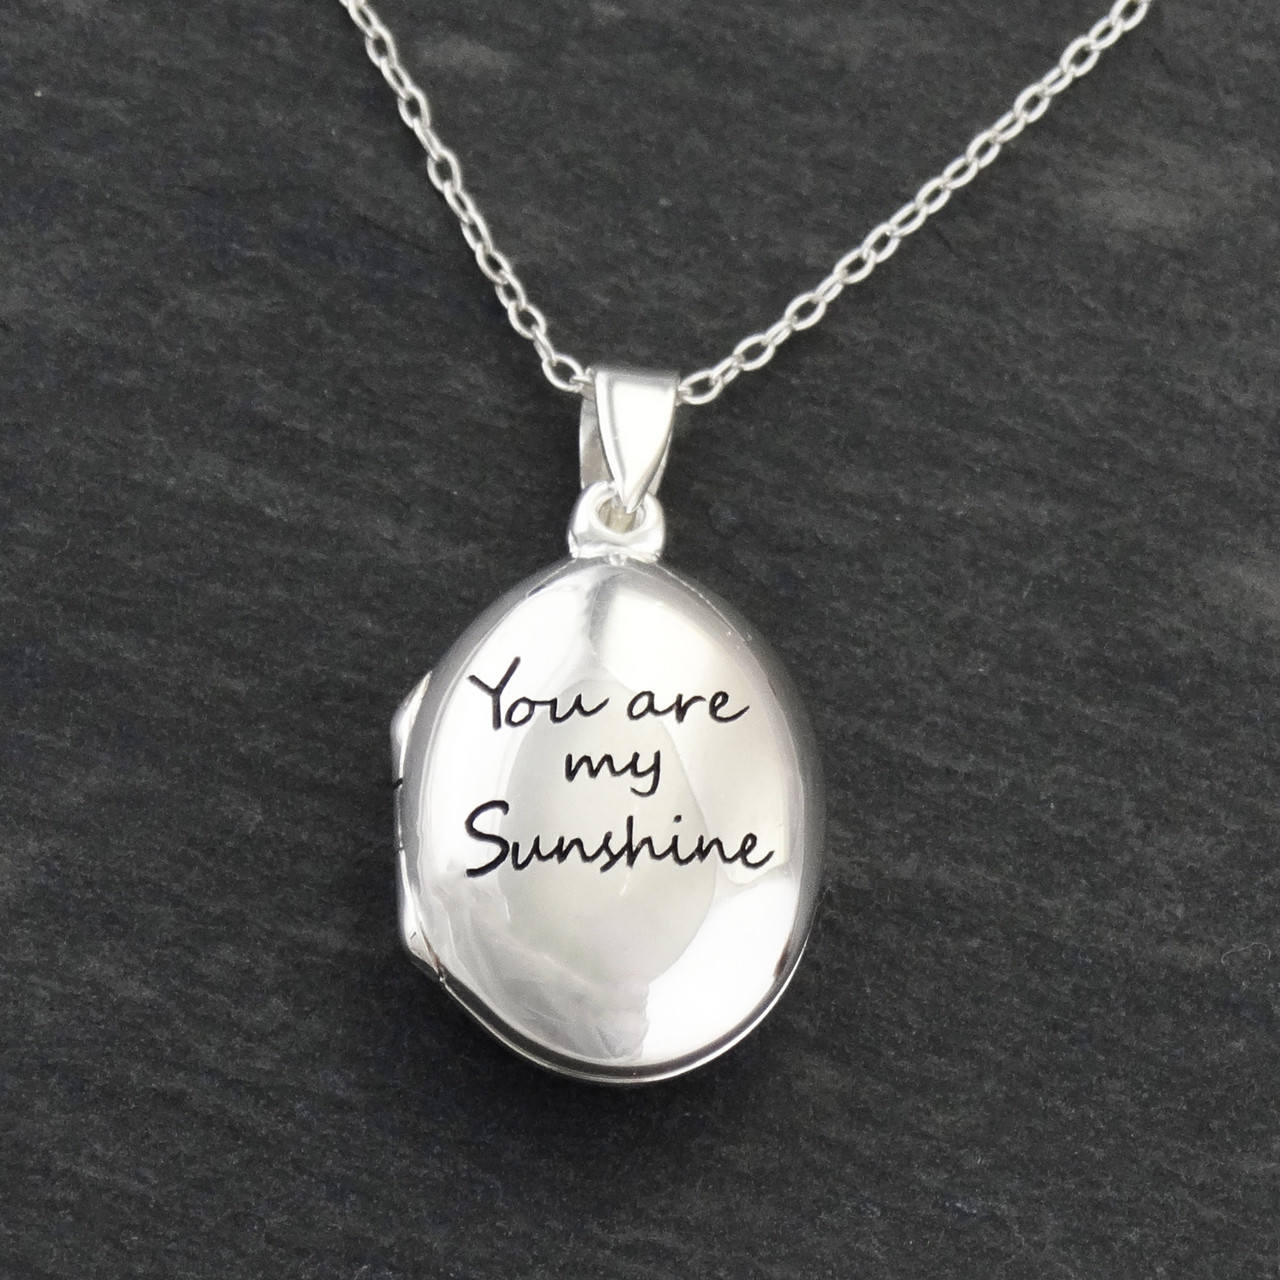 71355e0caf418b Sterling Silver You are My Sunshine Locket Necklace | FashionJunkie4Life